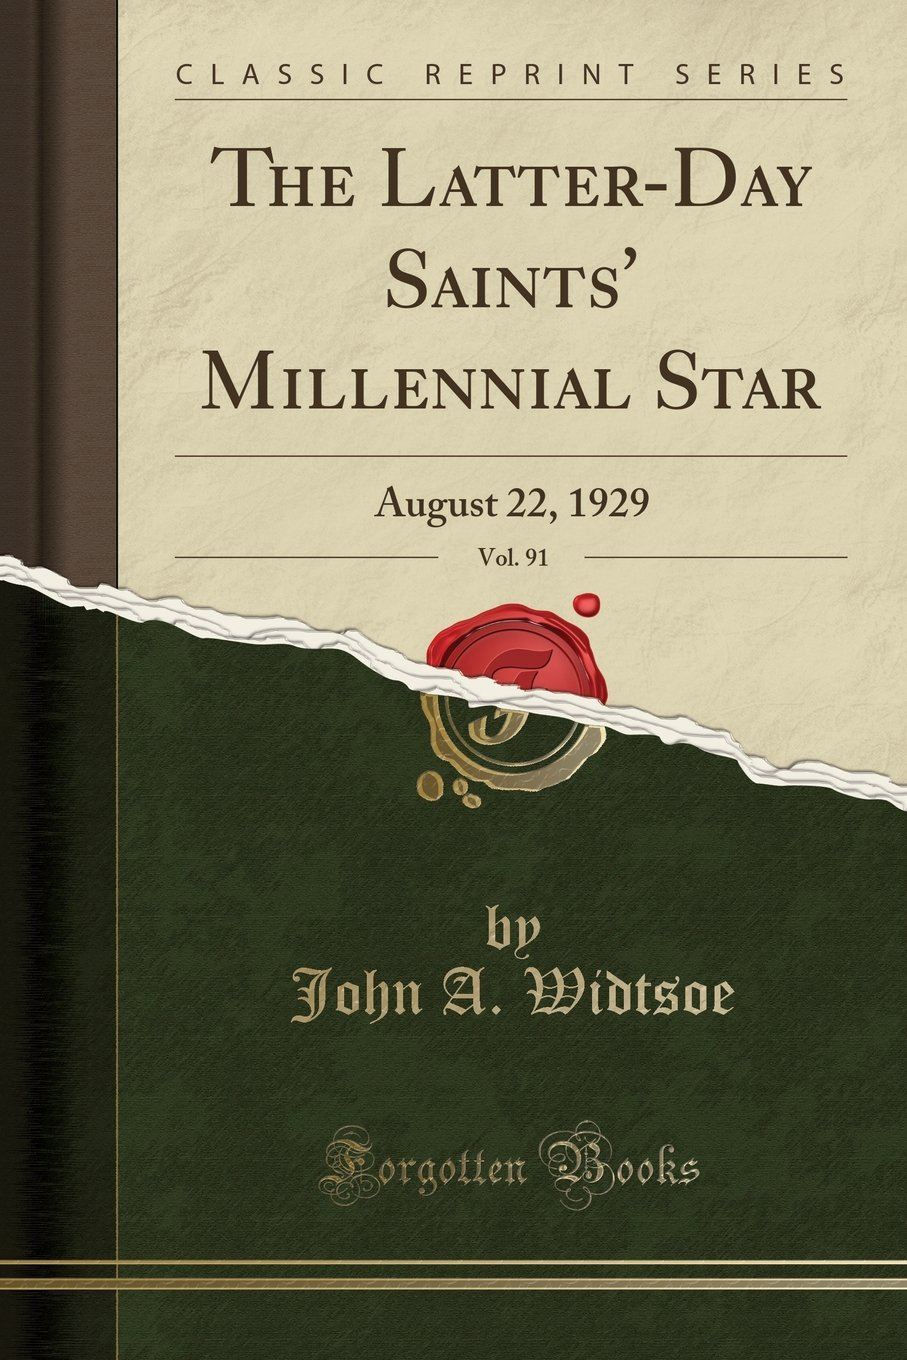 The Latter-Day Saints' Millennial Star, Vol. 91: August 22, 1929 (Classic Reprint) pdf